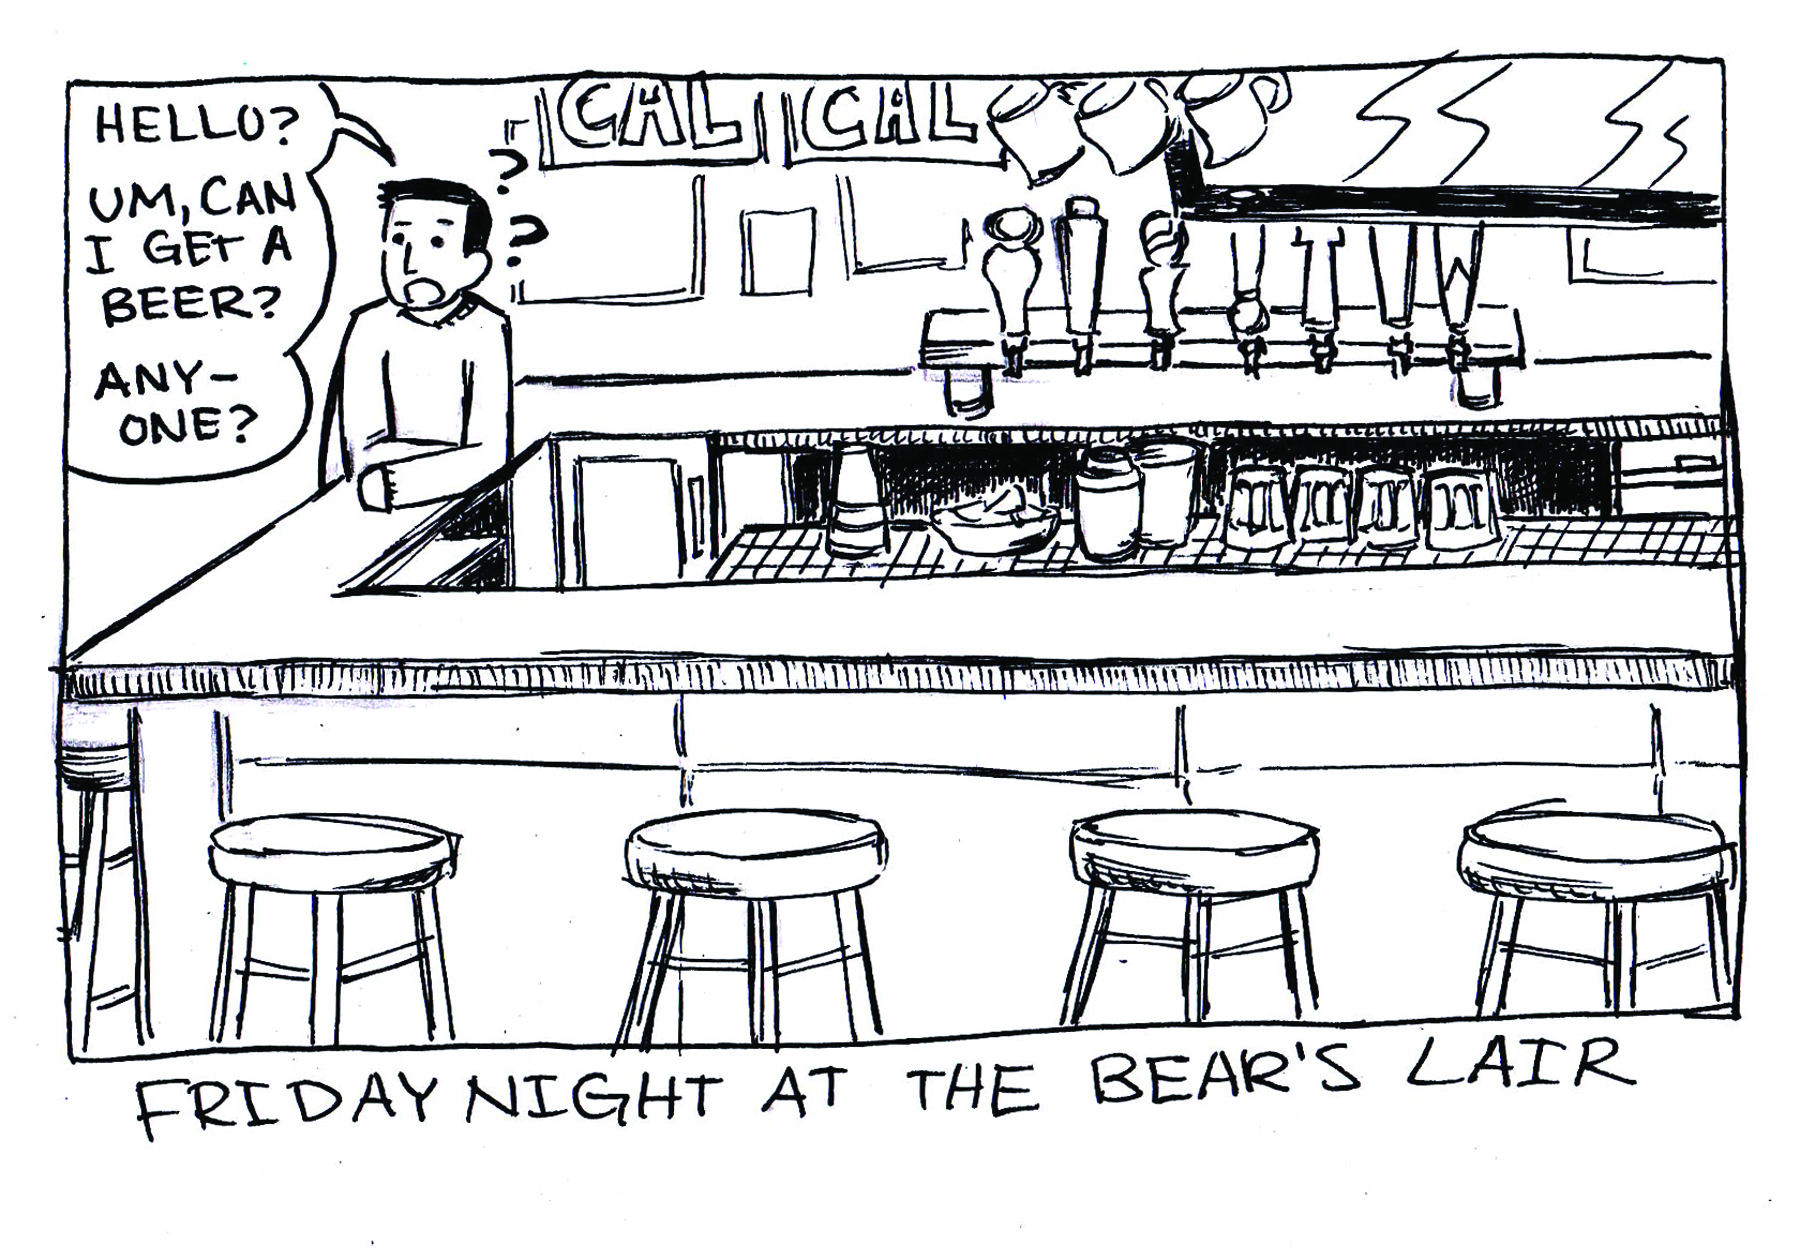 Friday Night at the Bear's Lair